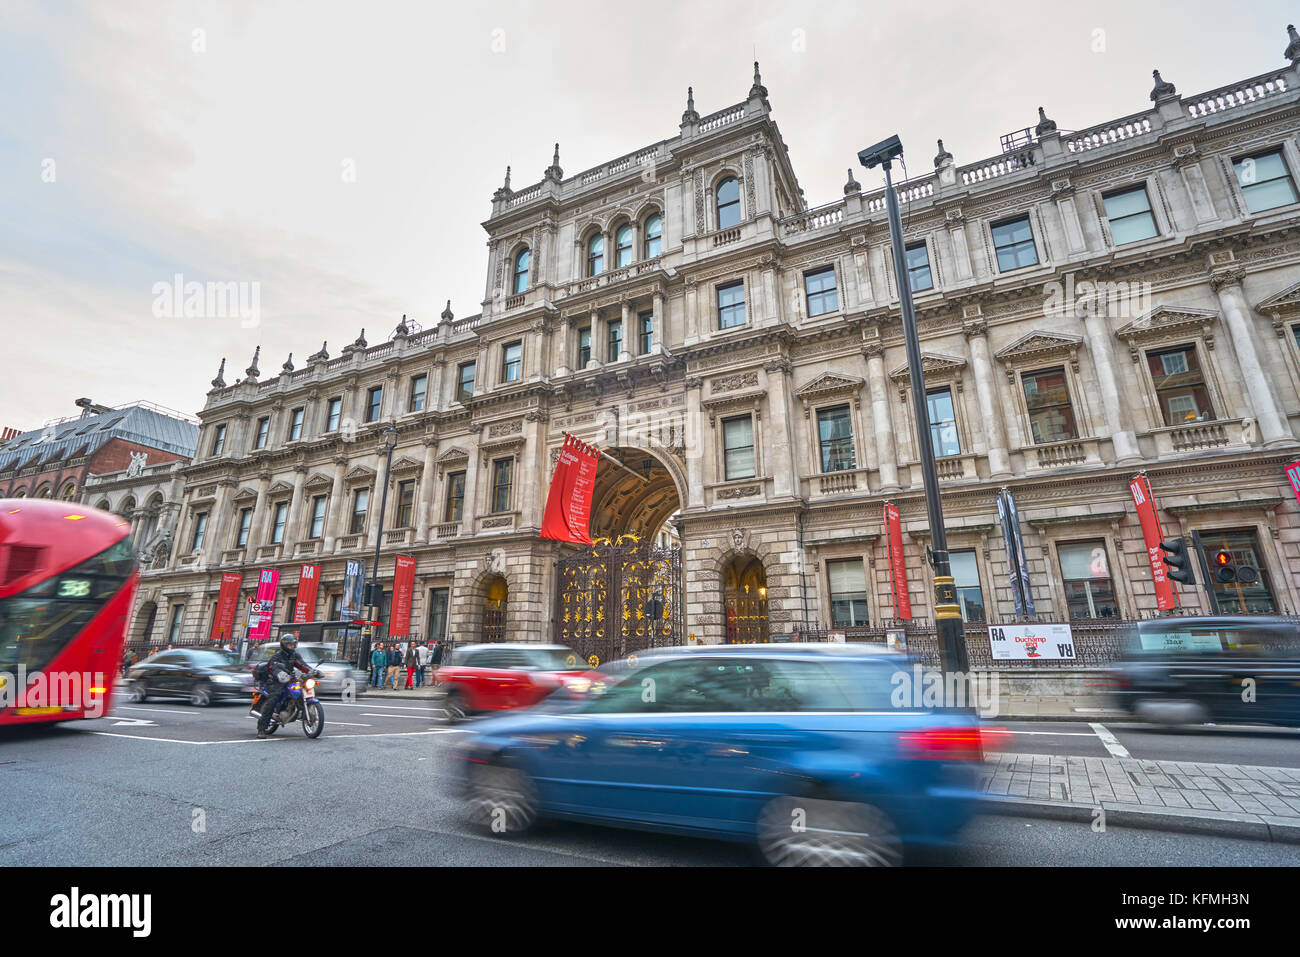 The Royal Academy Picadilly - Stock Image